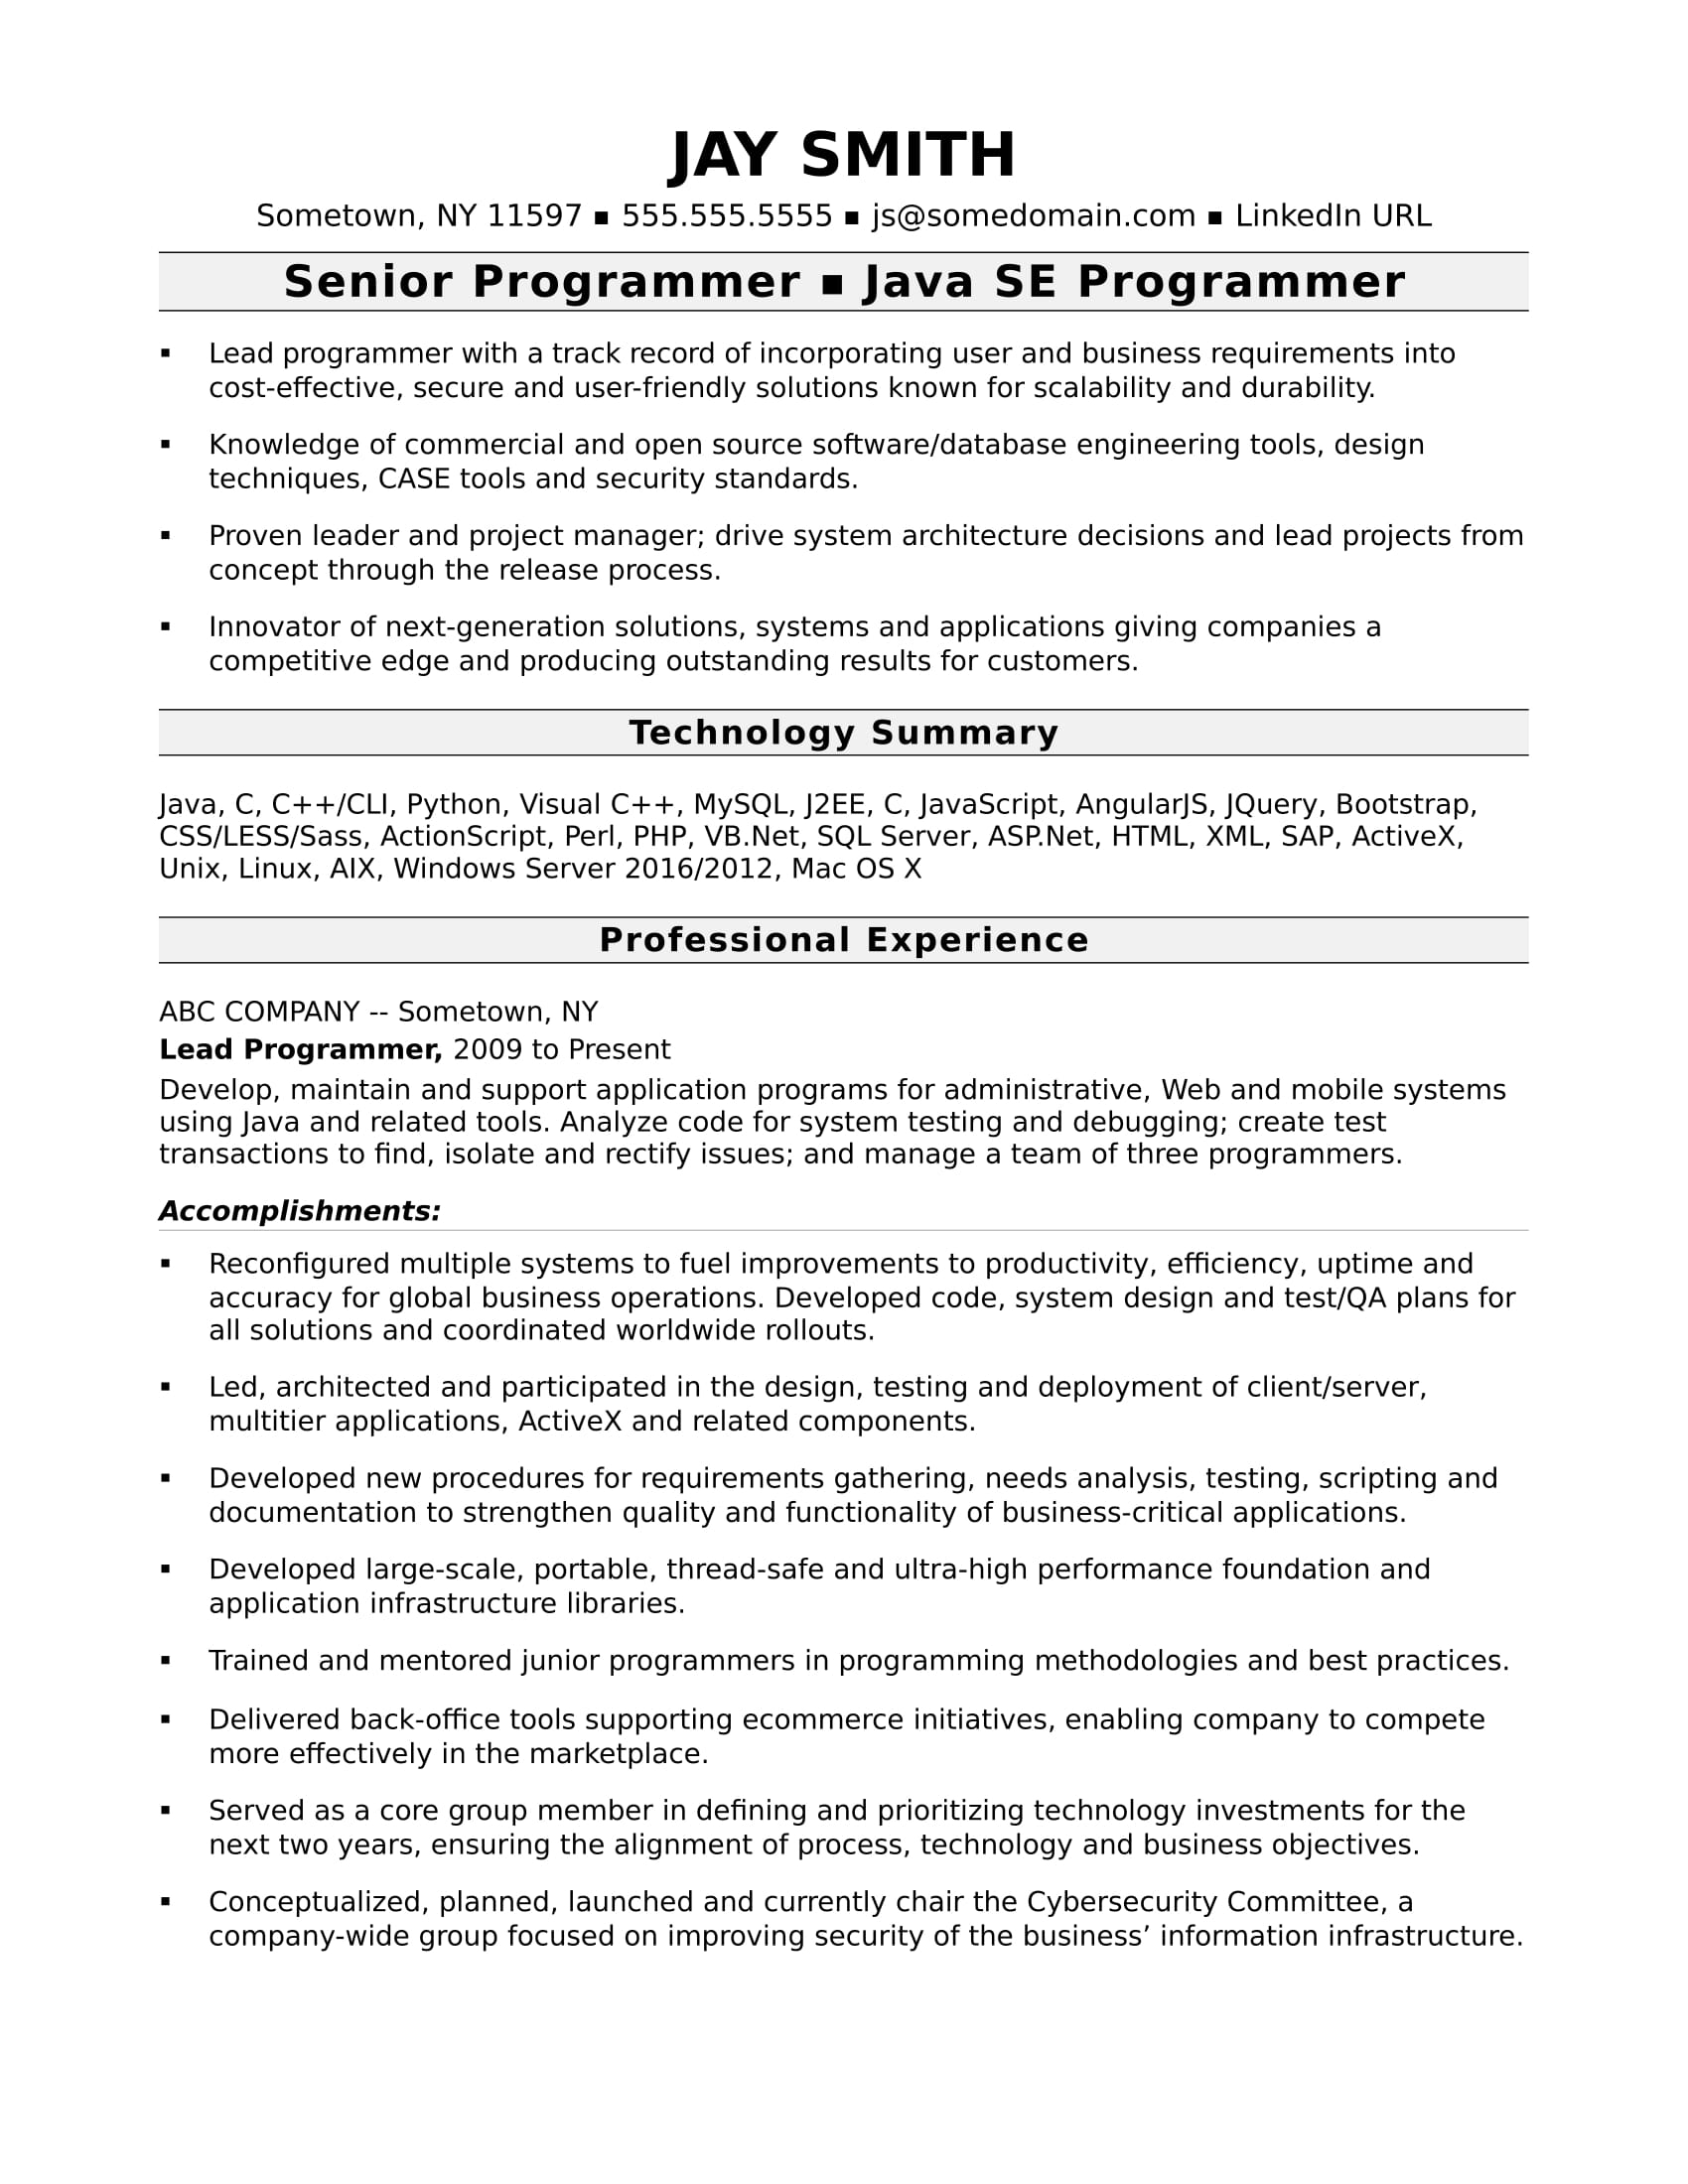 Sample Resume For An Experienced Computer Programmer Monster